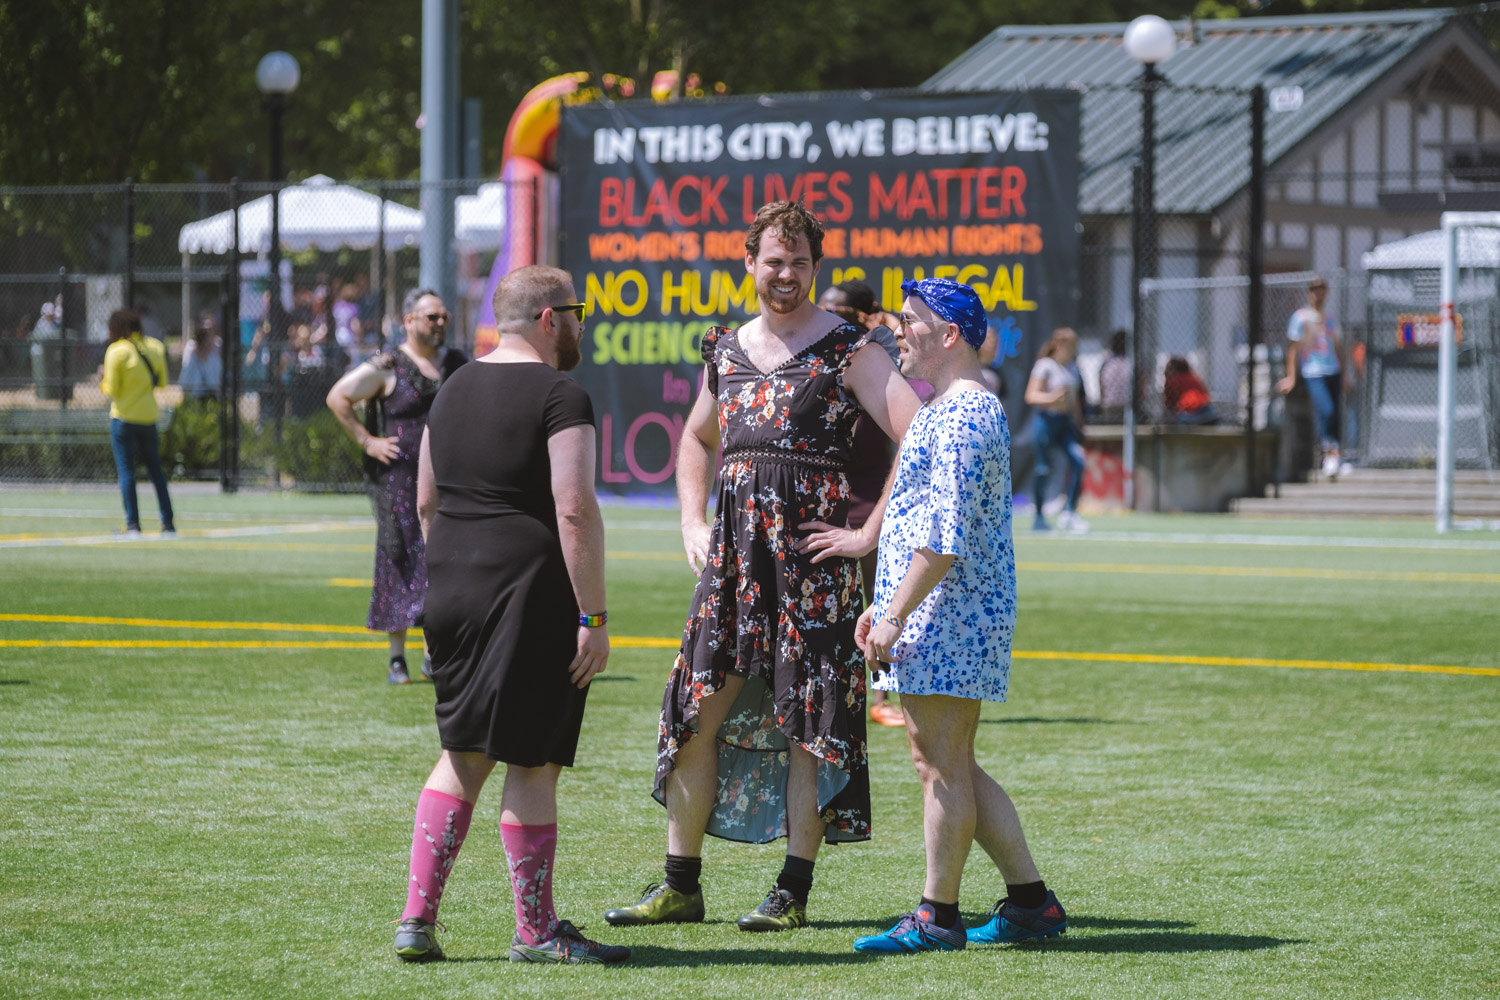 The Quake, Hens and Saracens all threw on the finest thrift store prom dress finds to play for charity! Proceeds going to genPRIDE, working to empower older LGBTQ+ adults with innovative programs and services that enhance belonging and support. (Image: Ryan McBoyle / Seattle Refined)